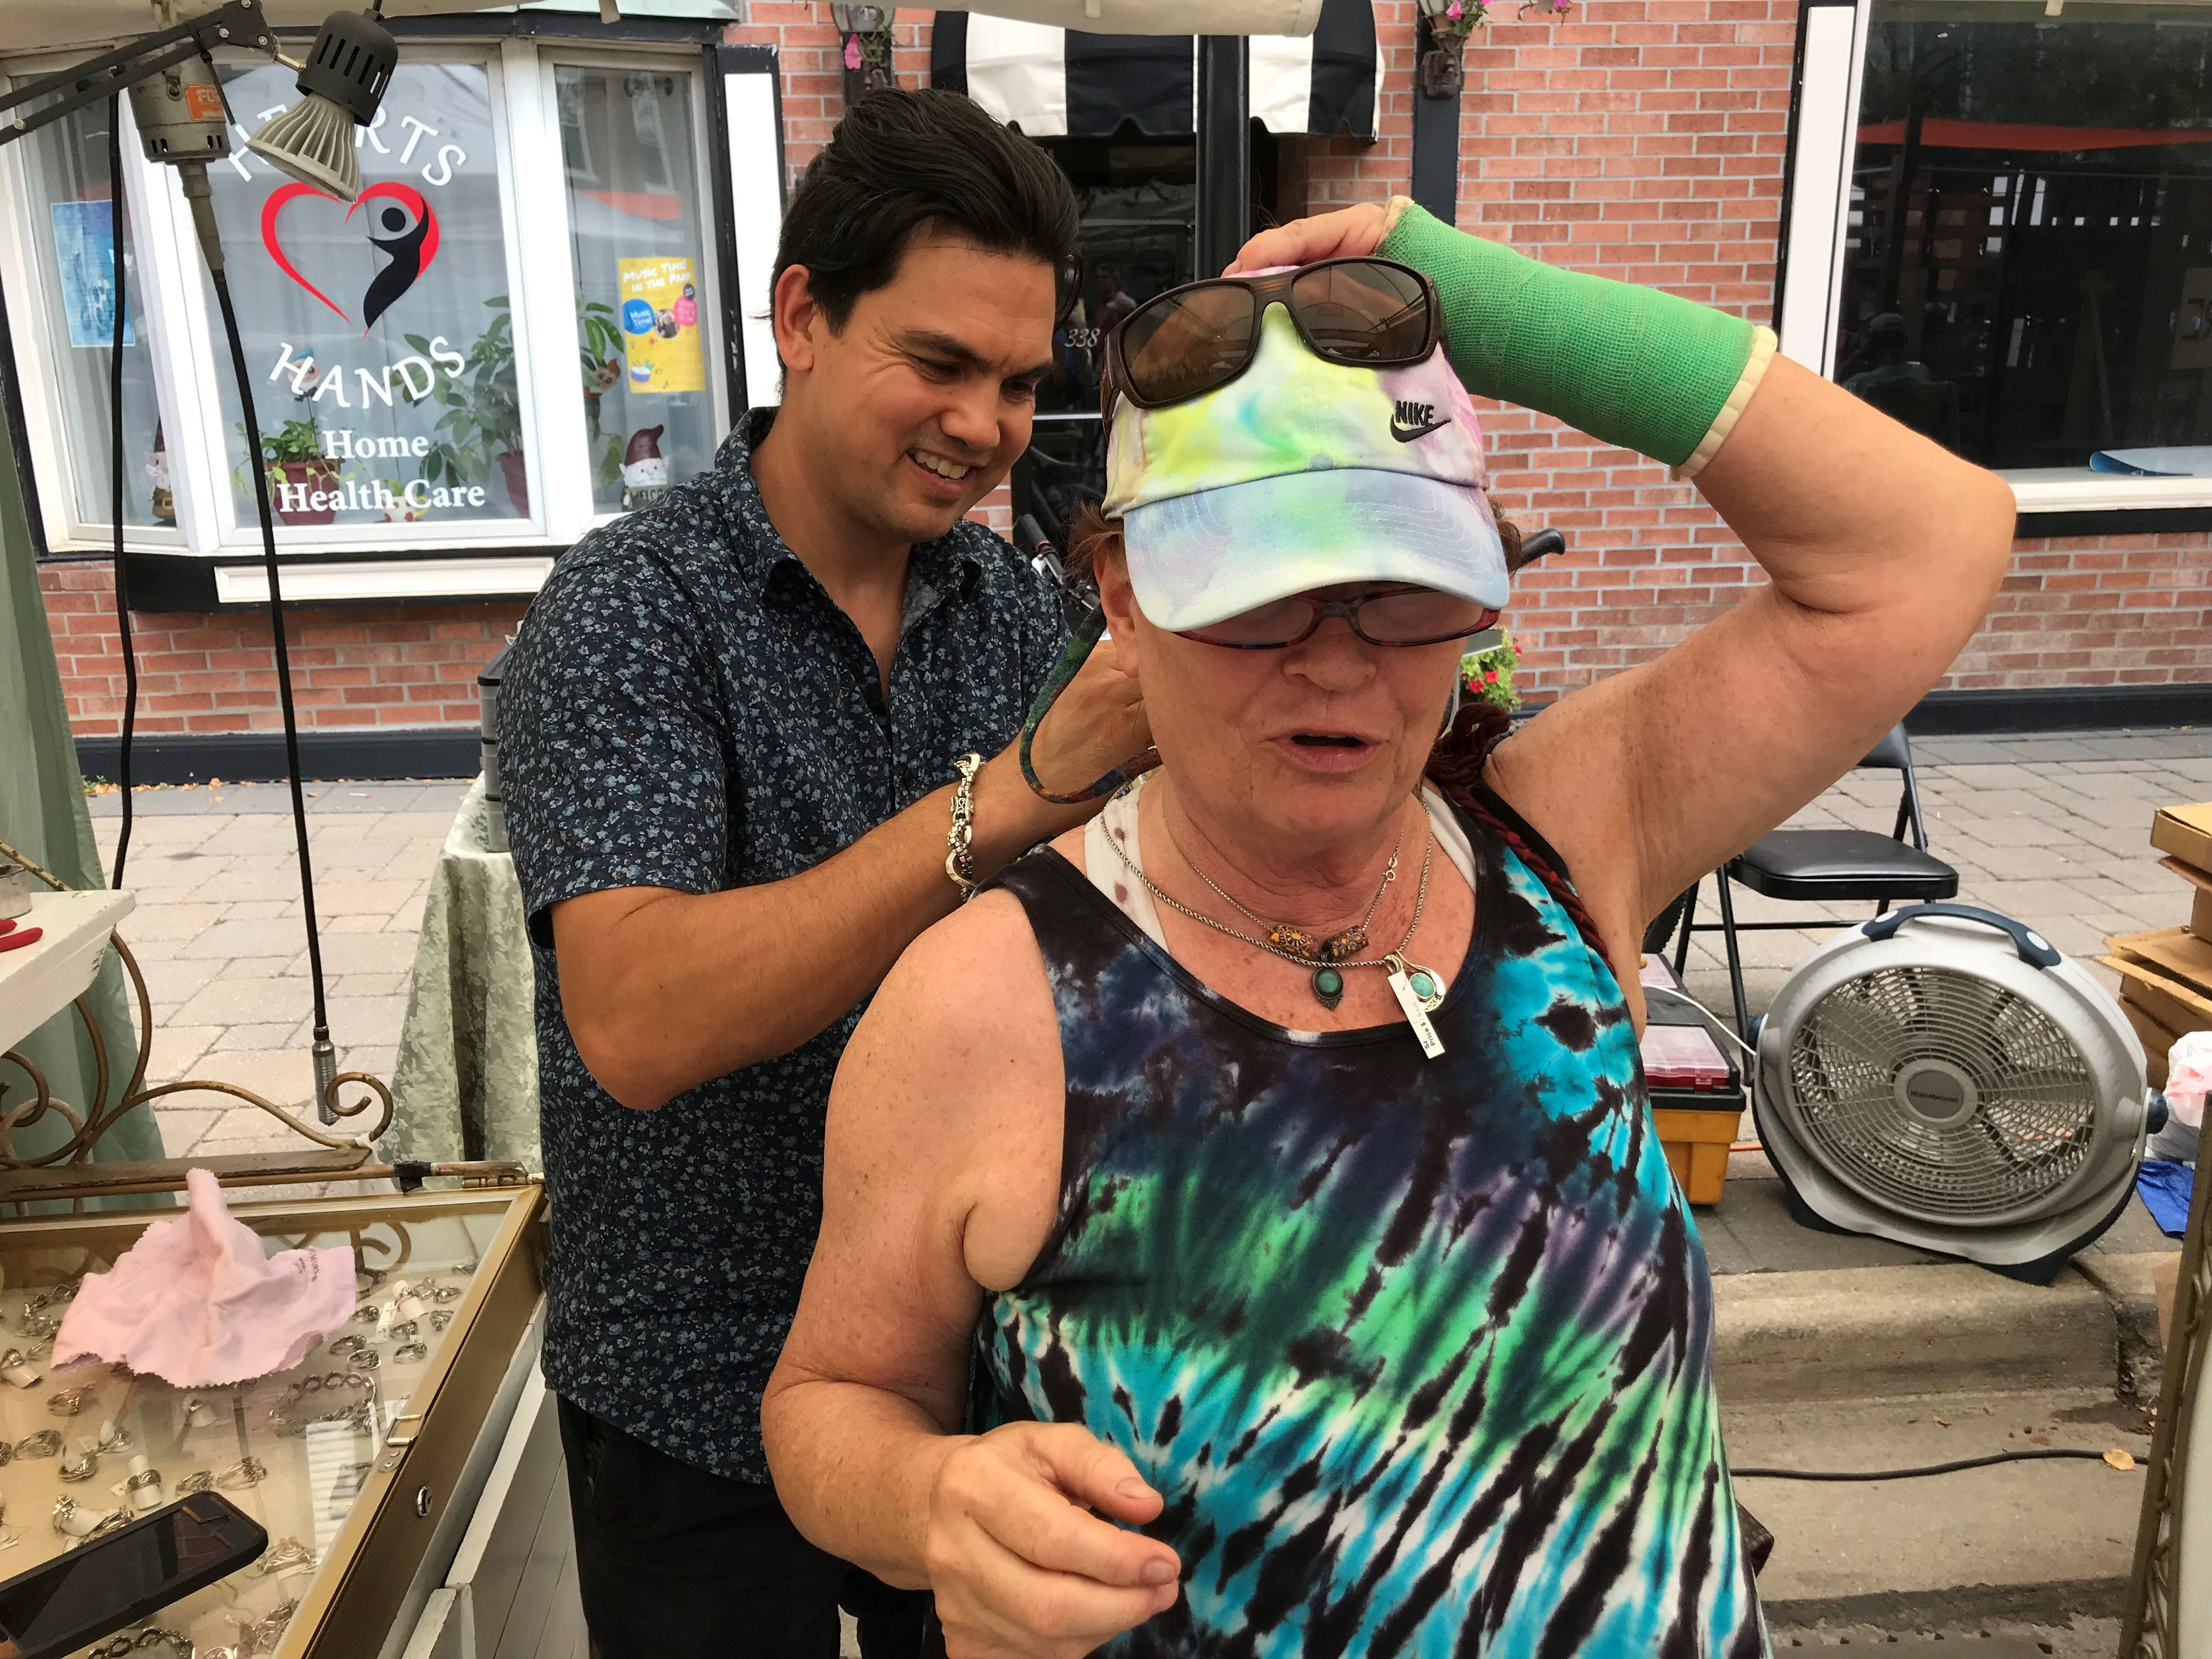 Patti Barkley of Bloomfield Township gets some help with jewelry from Shandor Madjar of Colorado Springs, Colo.